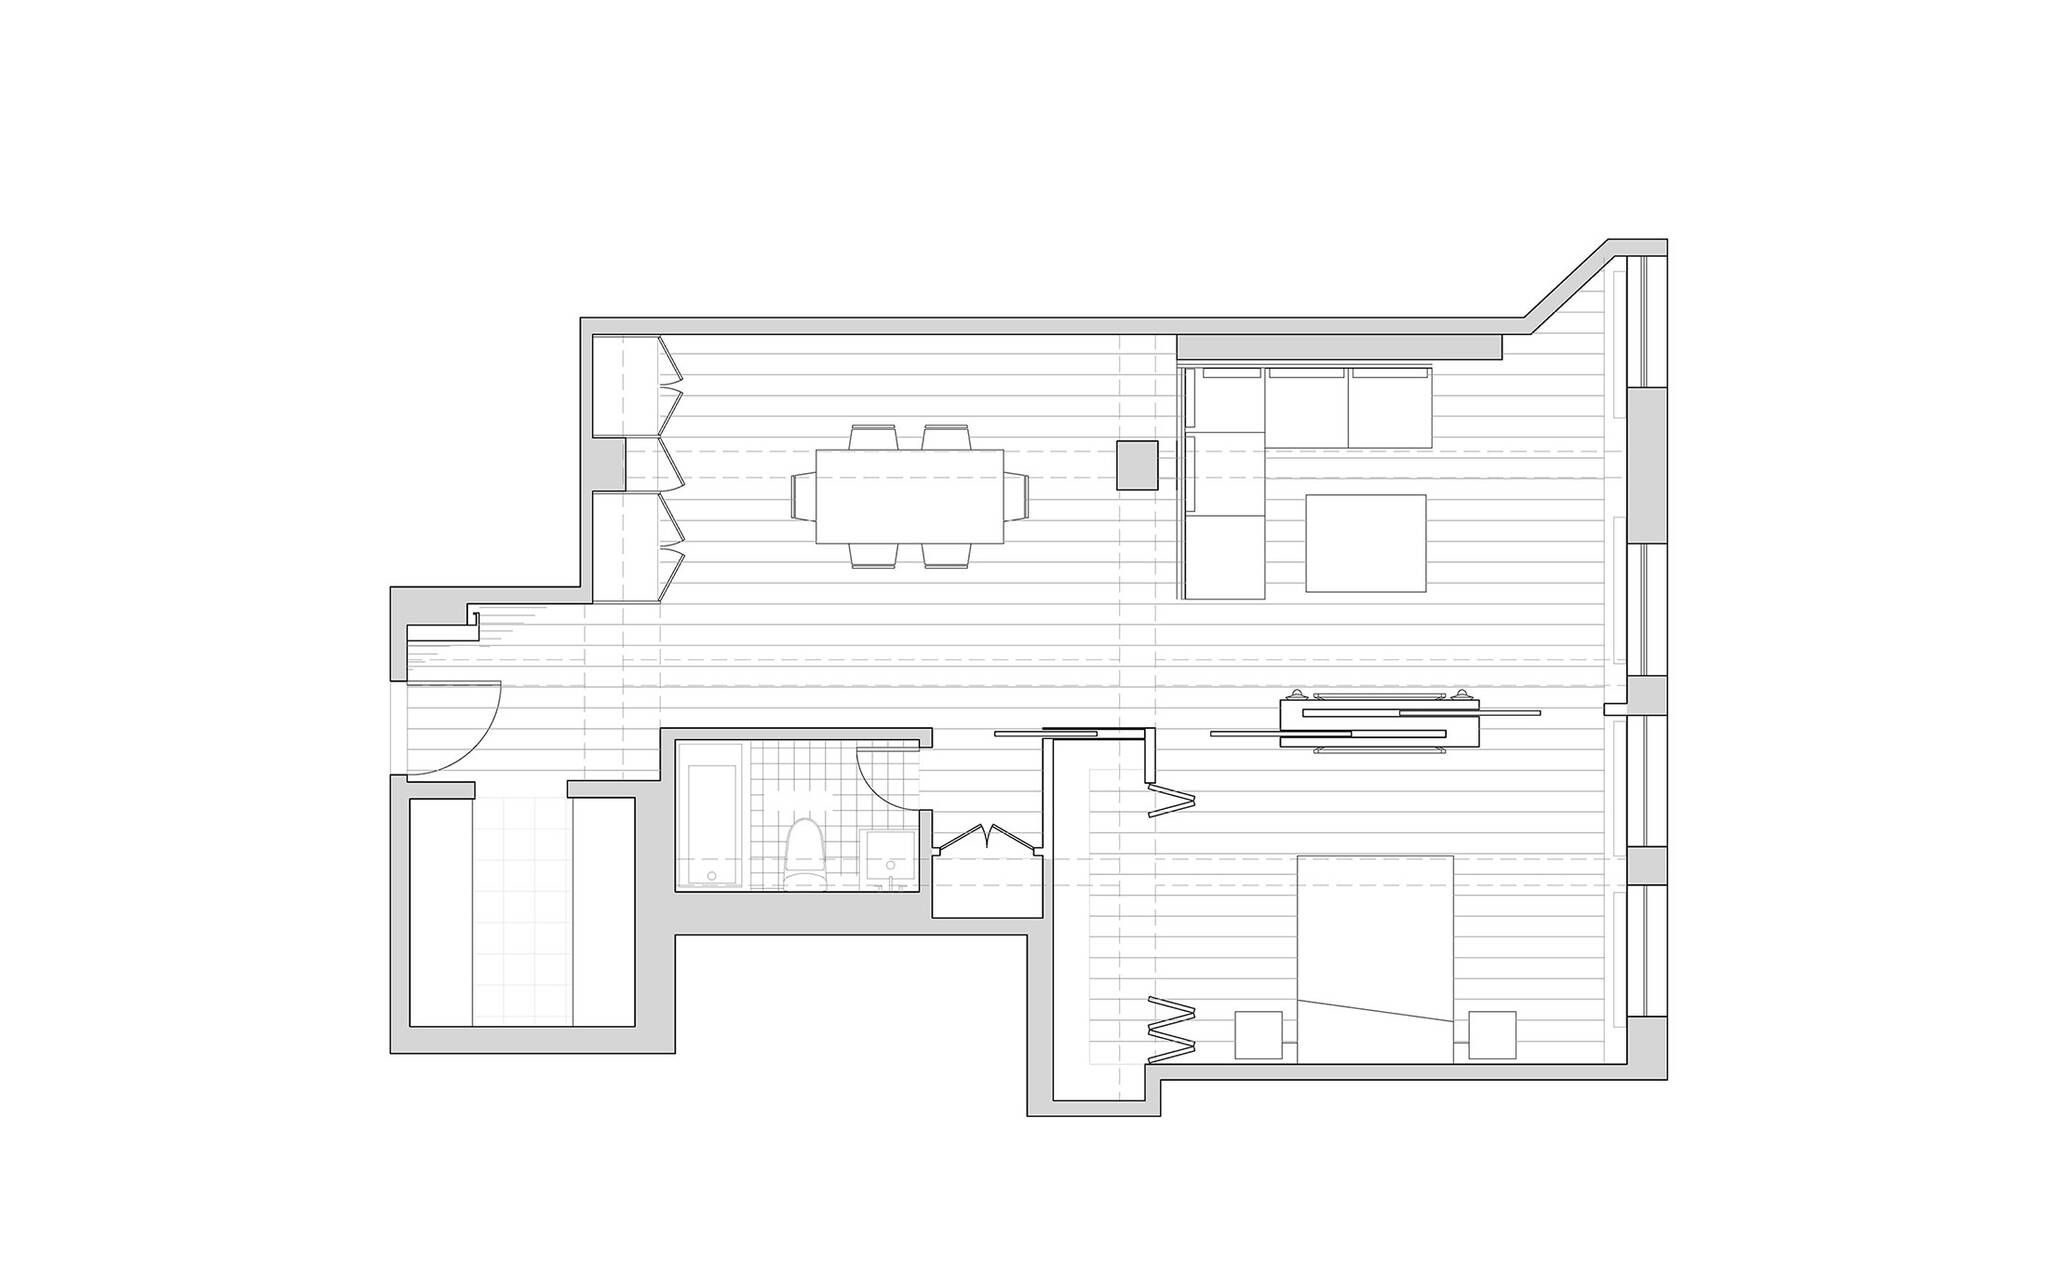 Furniture plan of the residence renovation project in the Chelsea Mews building on the Flatiron District in Manhattan, New York City designed by the architecture studio Danny Forster & Architecture